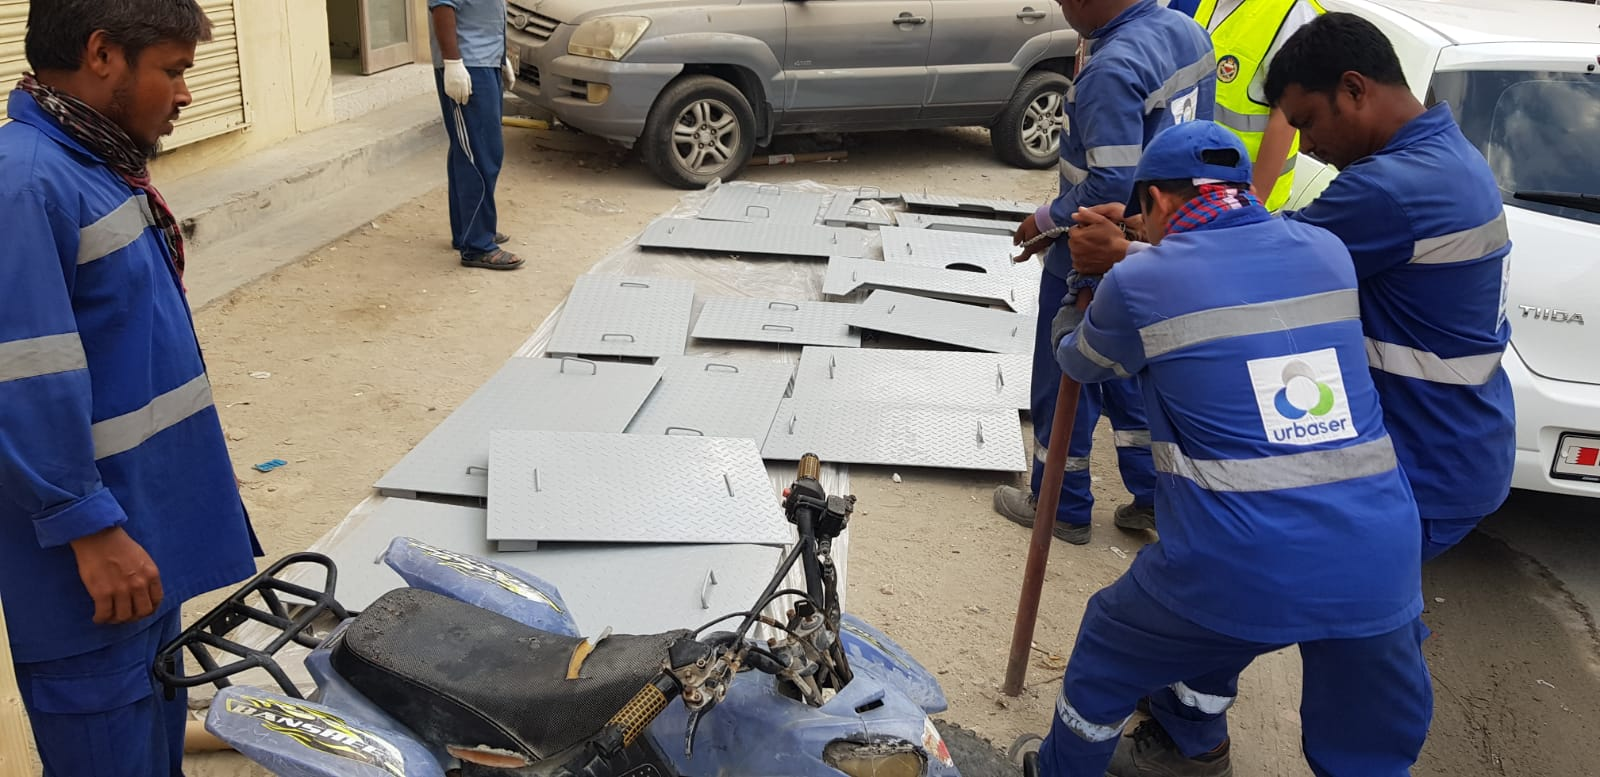 The municipality of Al Janoubia implements removal campaigns on road works in Al-Hajiyat 939 block